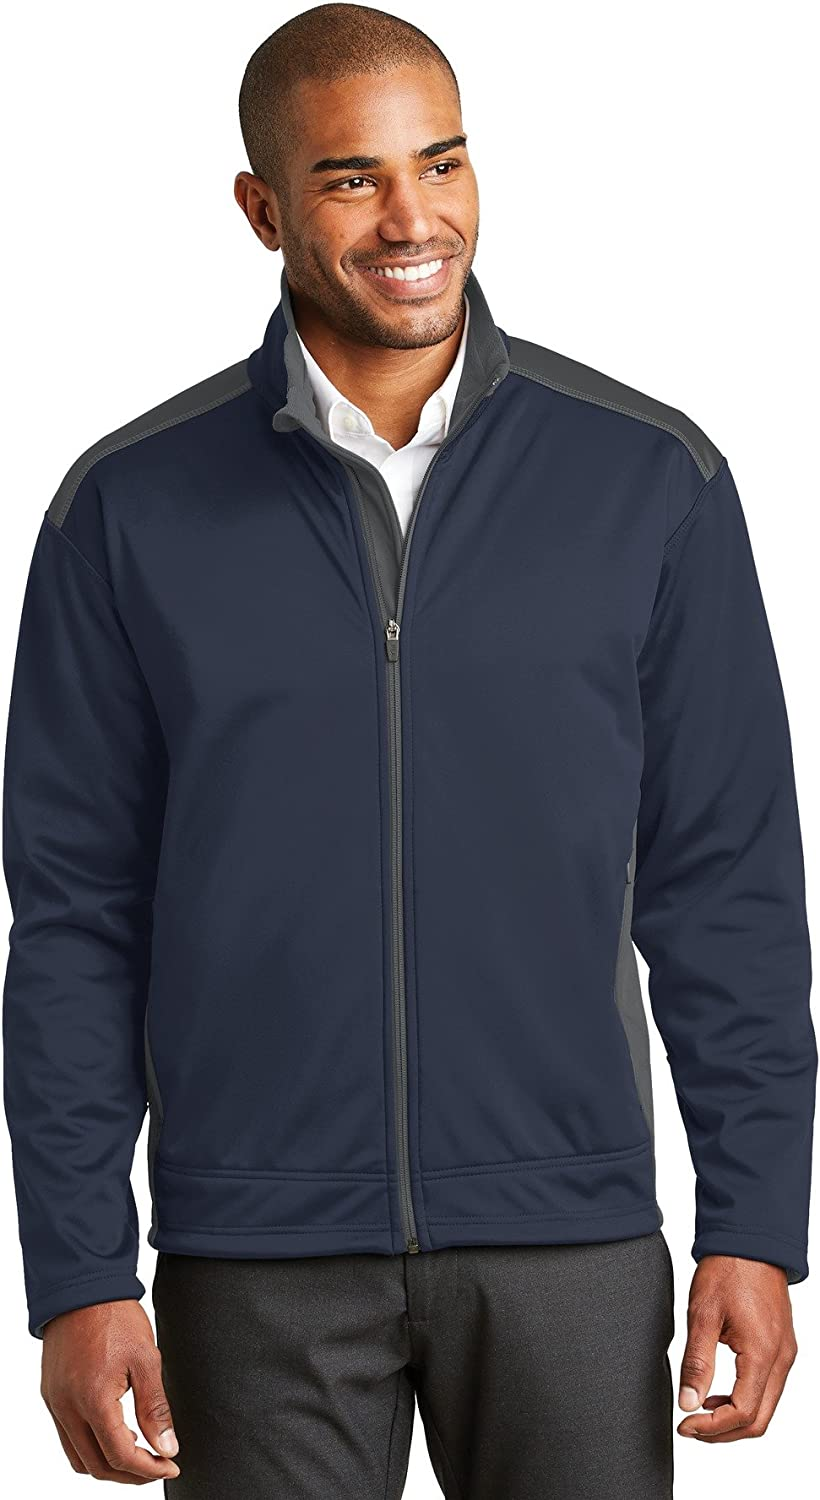 Port Authority Men's Two-Tone Soft Shell Jacket in Your Choice of Colors